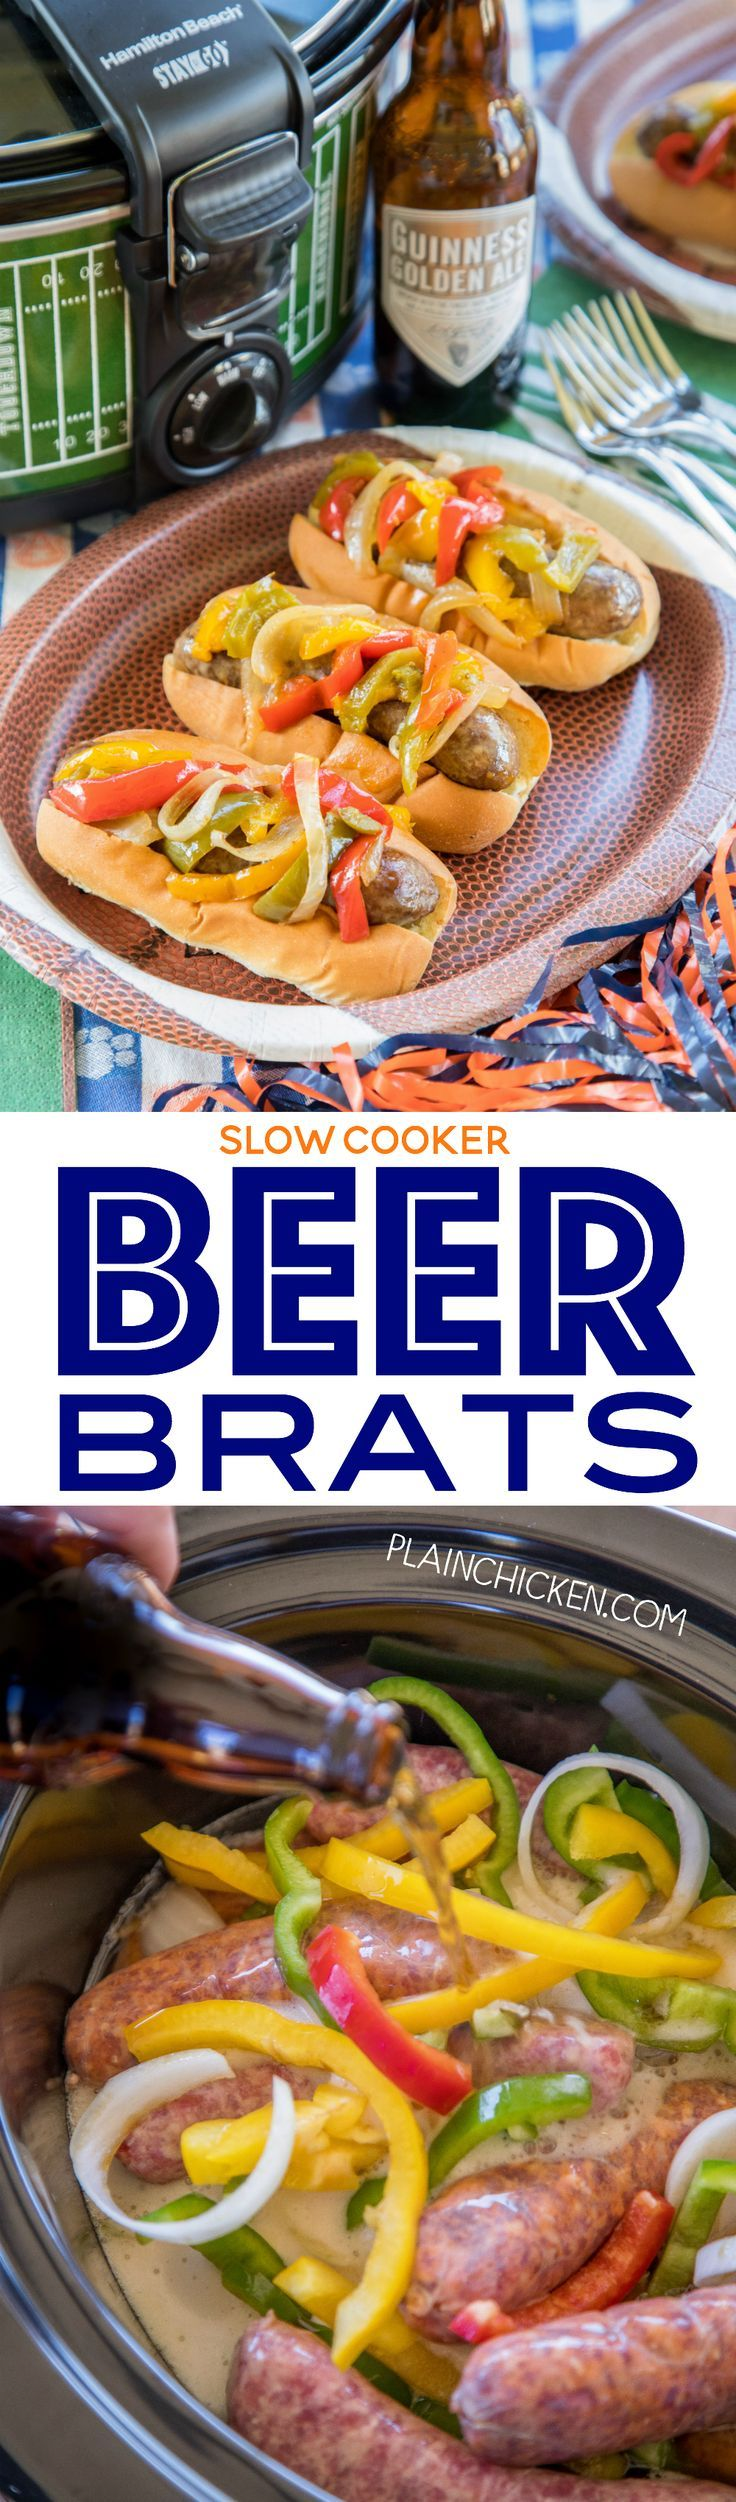 Slow Cooker Beer Brats - perfect tailgating food! Just toss everything in the slow cooker and let it work its magic. Can serve out of the slow cooker too! SO easy and the brats taste amazing!! Brats, beer, onion, bell peppers, salt, pepper, Worcestershire